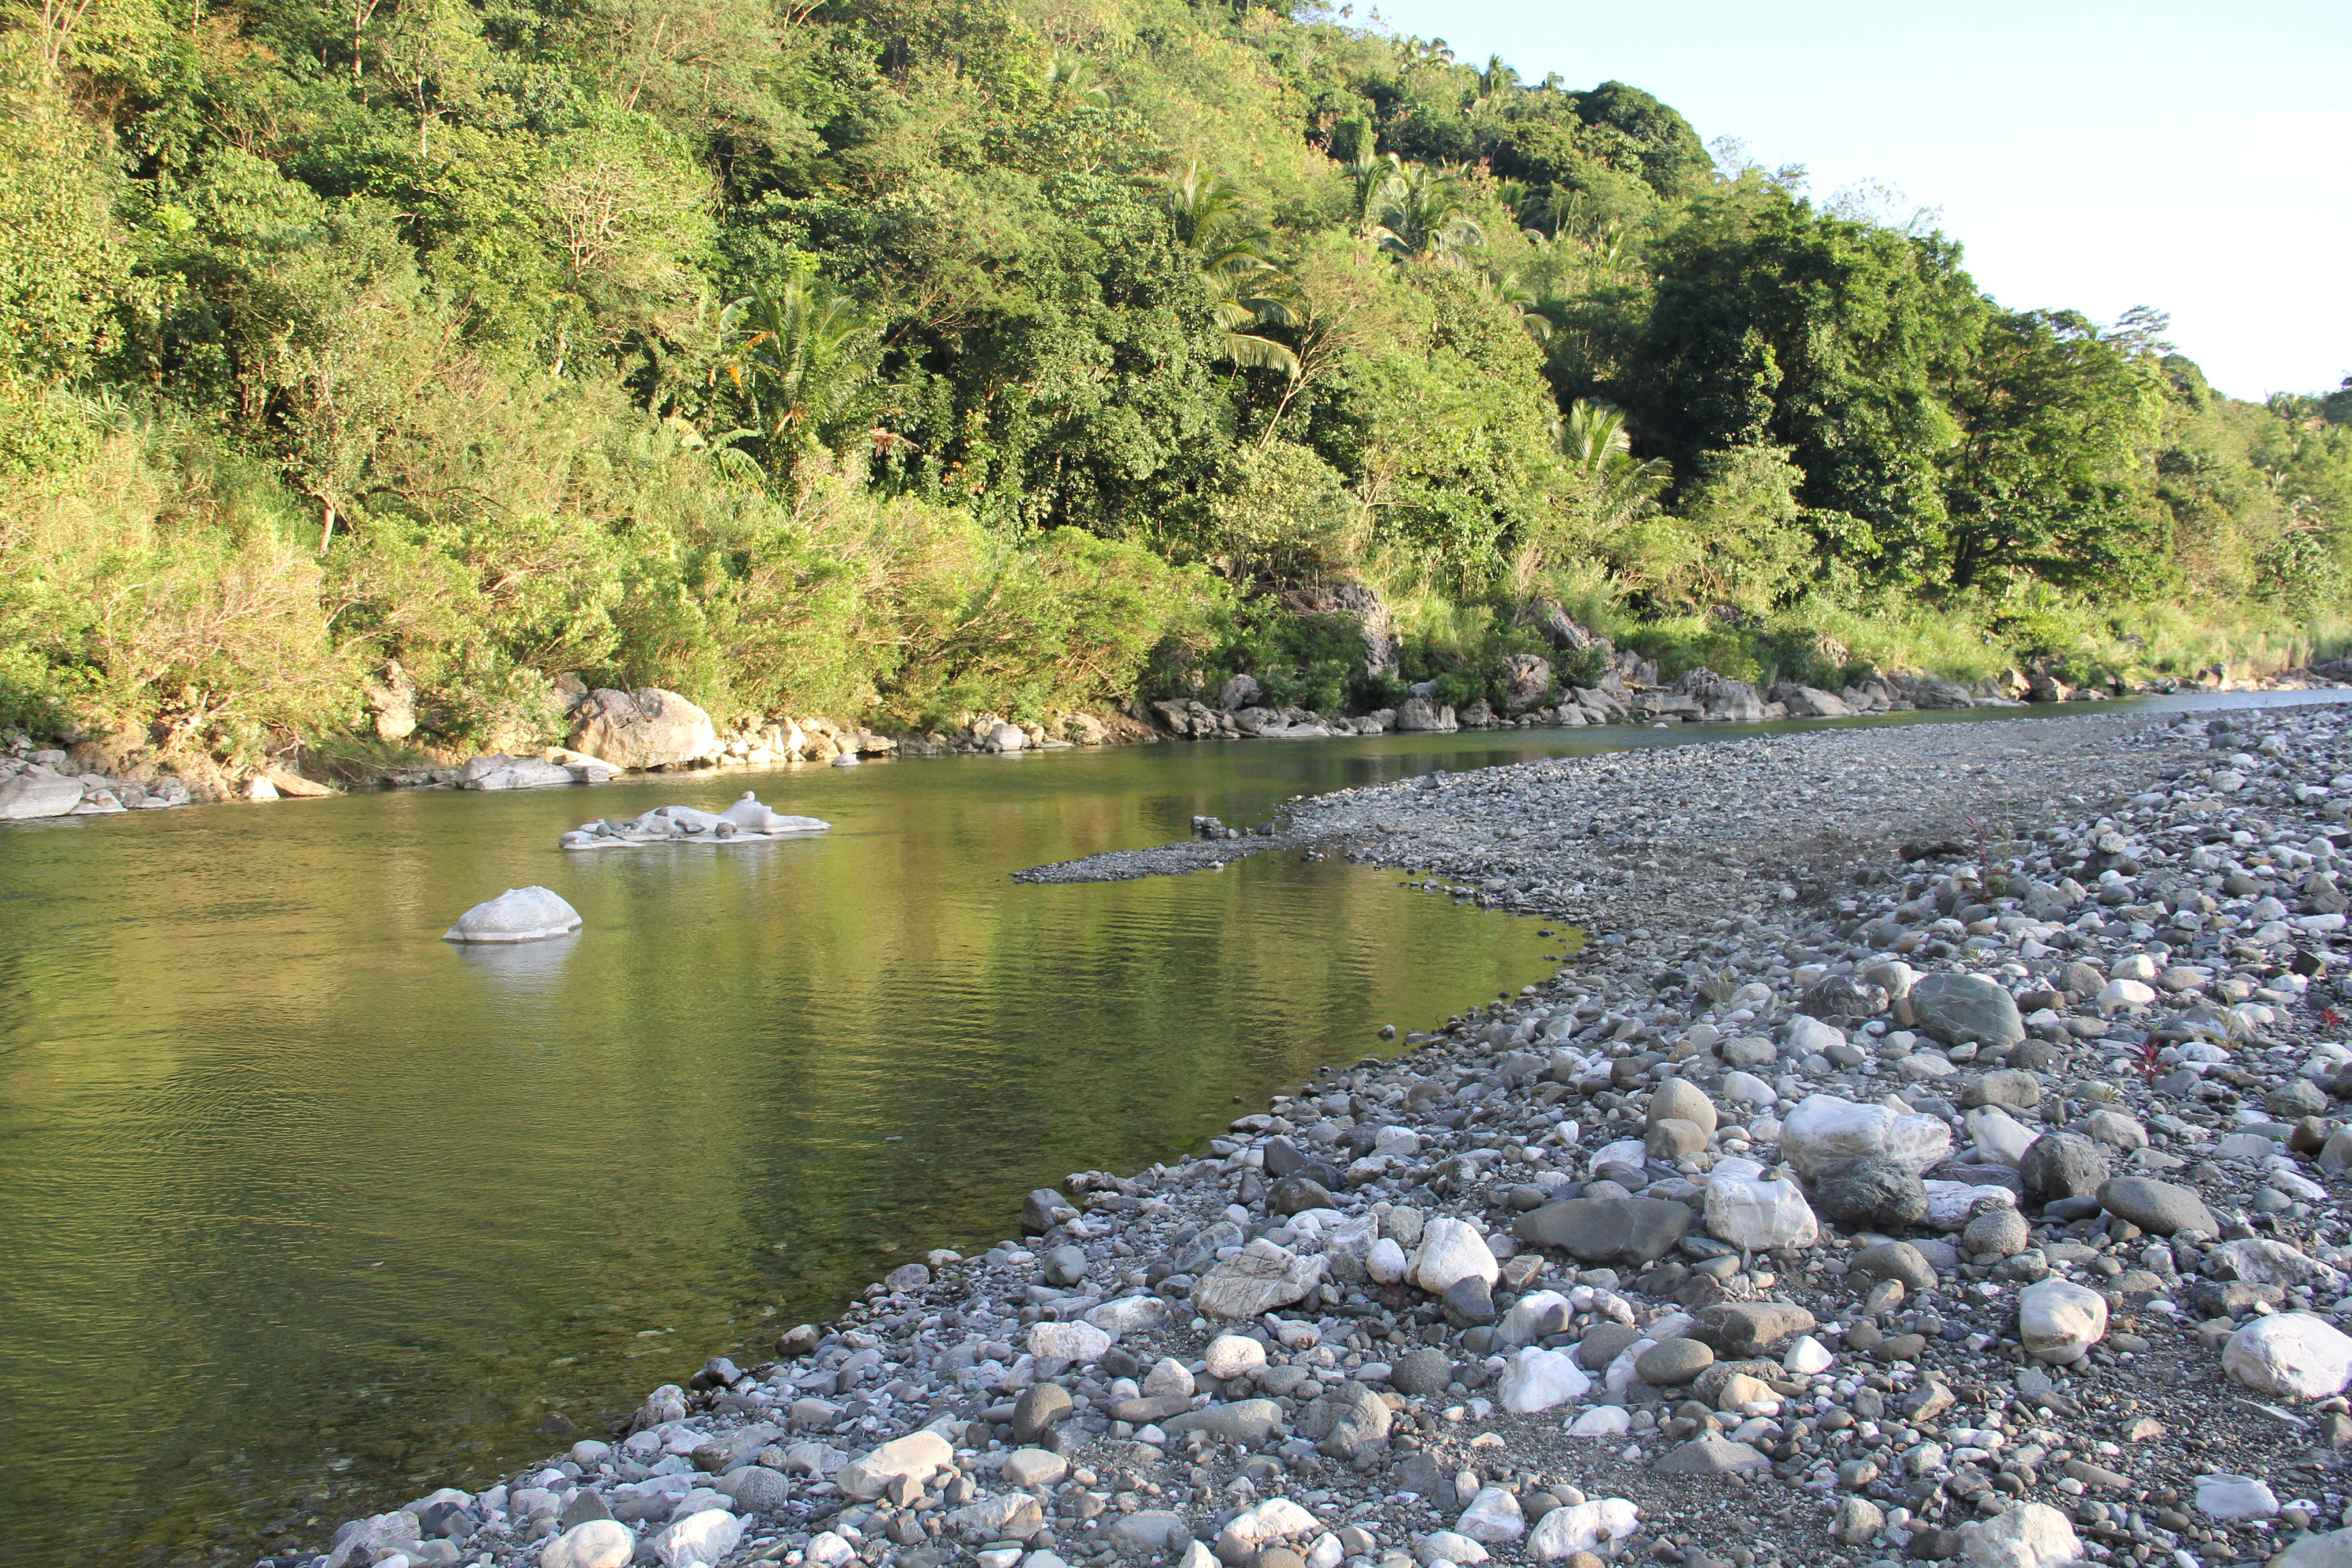 Camping 2014: Rediscovering Nature